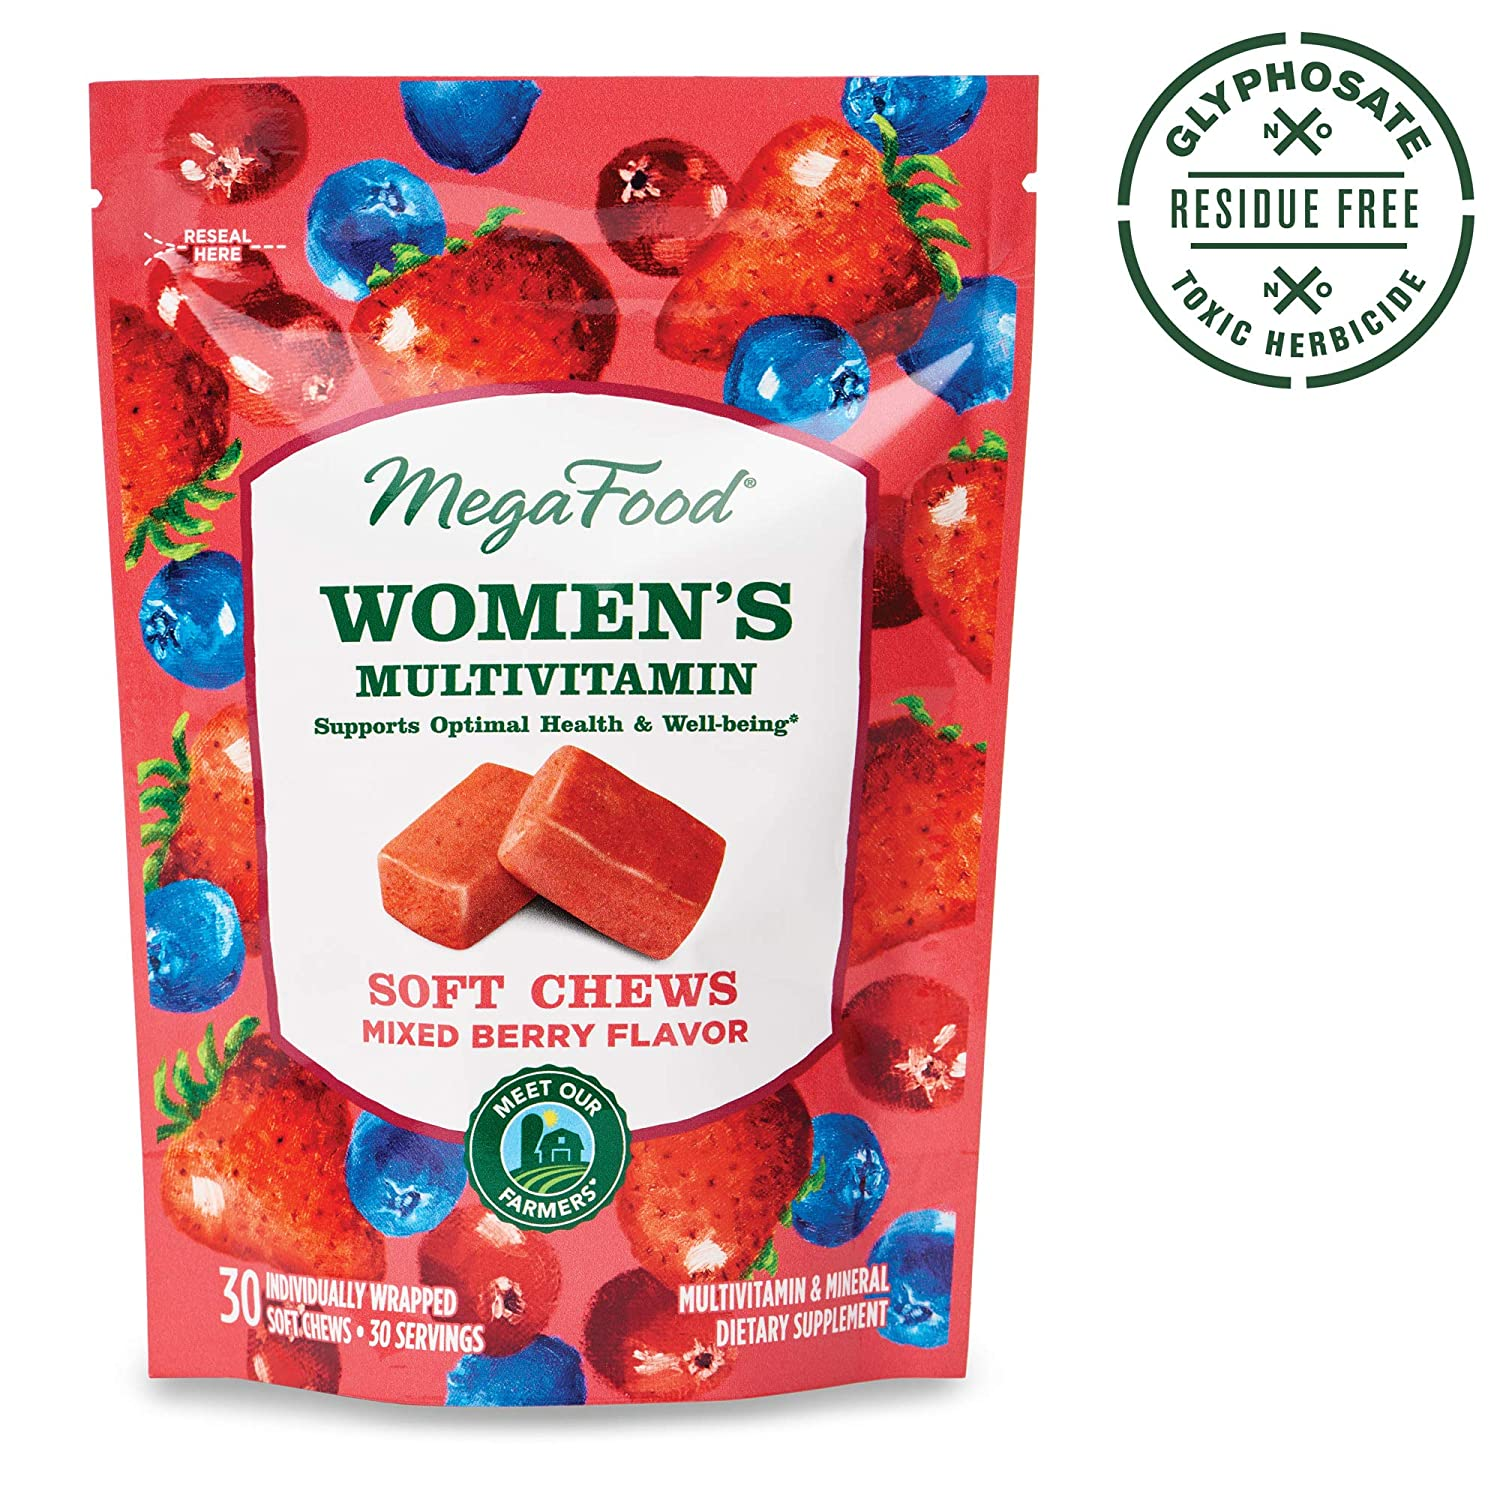 MegaFood, Women s Multivitamin Soft Chews, Daily Supplement, Supports Optimal Health and Well-Being, Gluten-Free, Vegetarian, Mixed Berry, 30 Chews 30 Servings